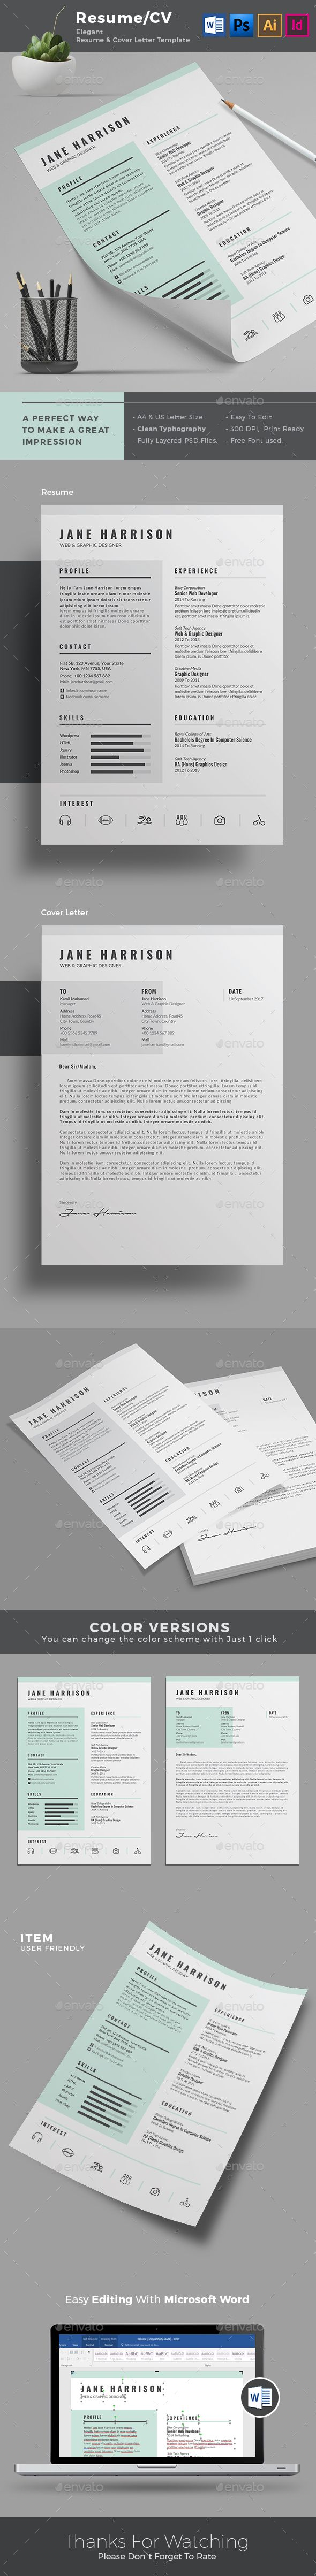 CV Word Resume Design TemplateCv 223